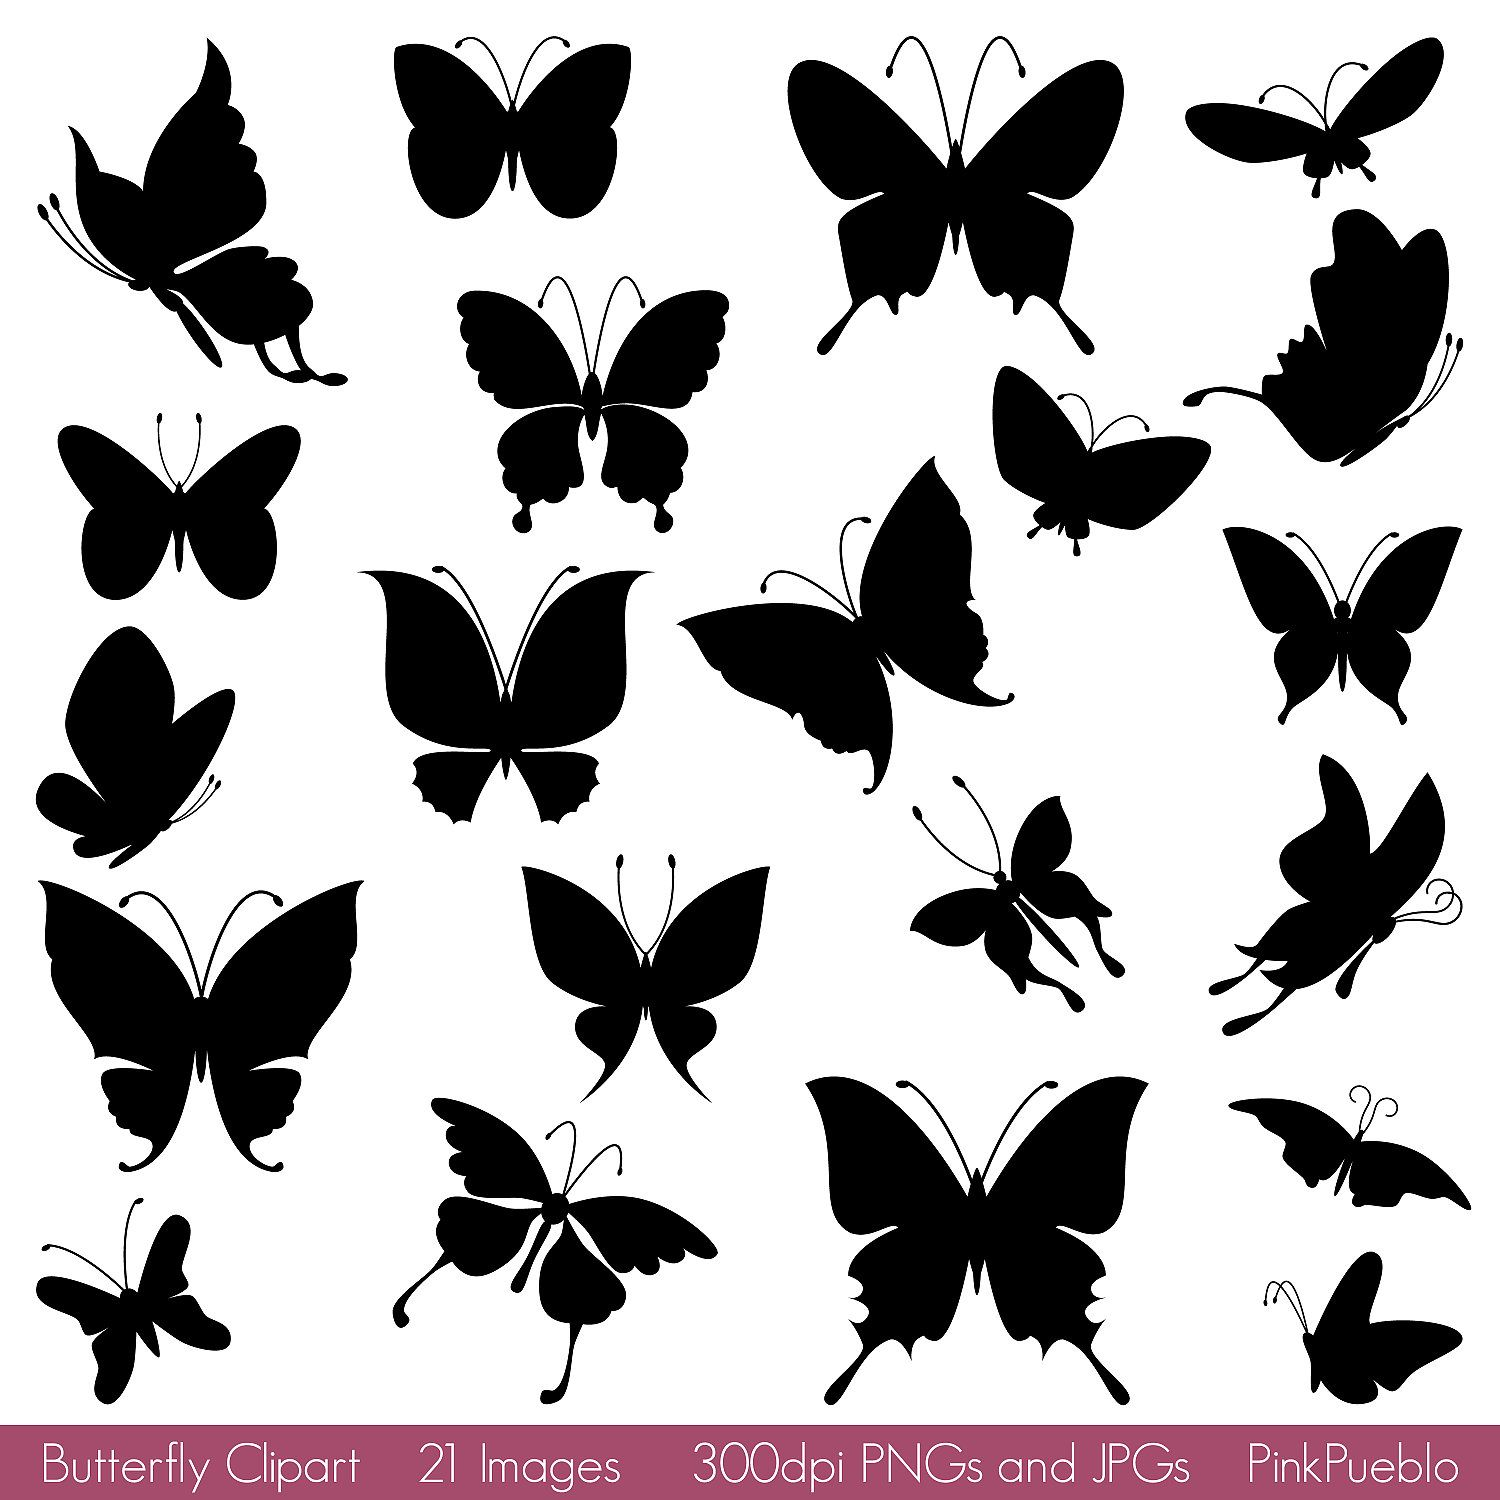 Butterfly Silhouettes Clipart Clip Art, Butterfly Clipart ...